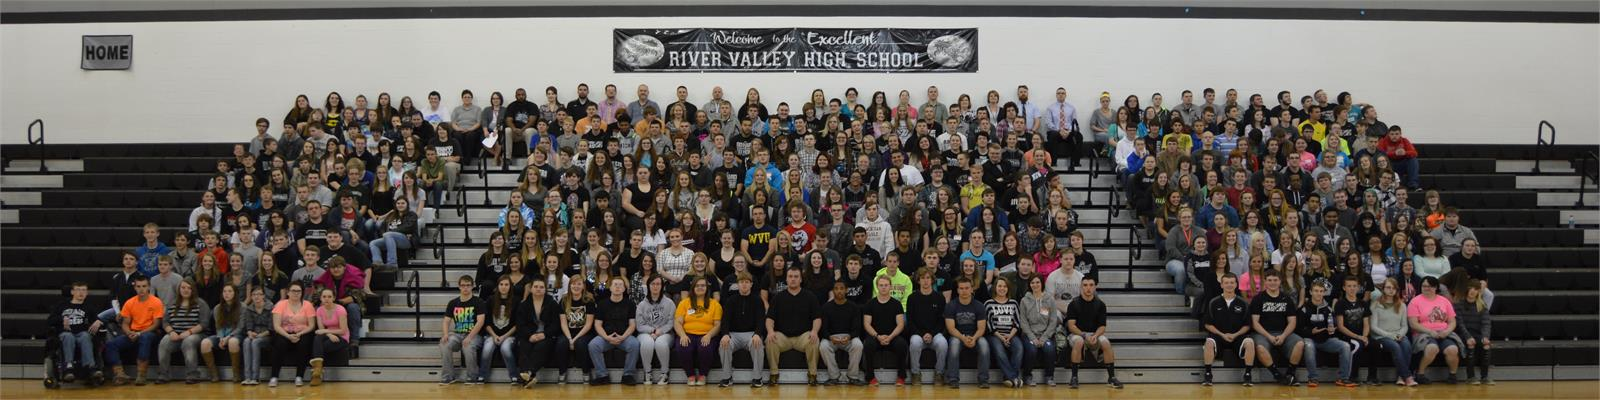 River Valley High School